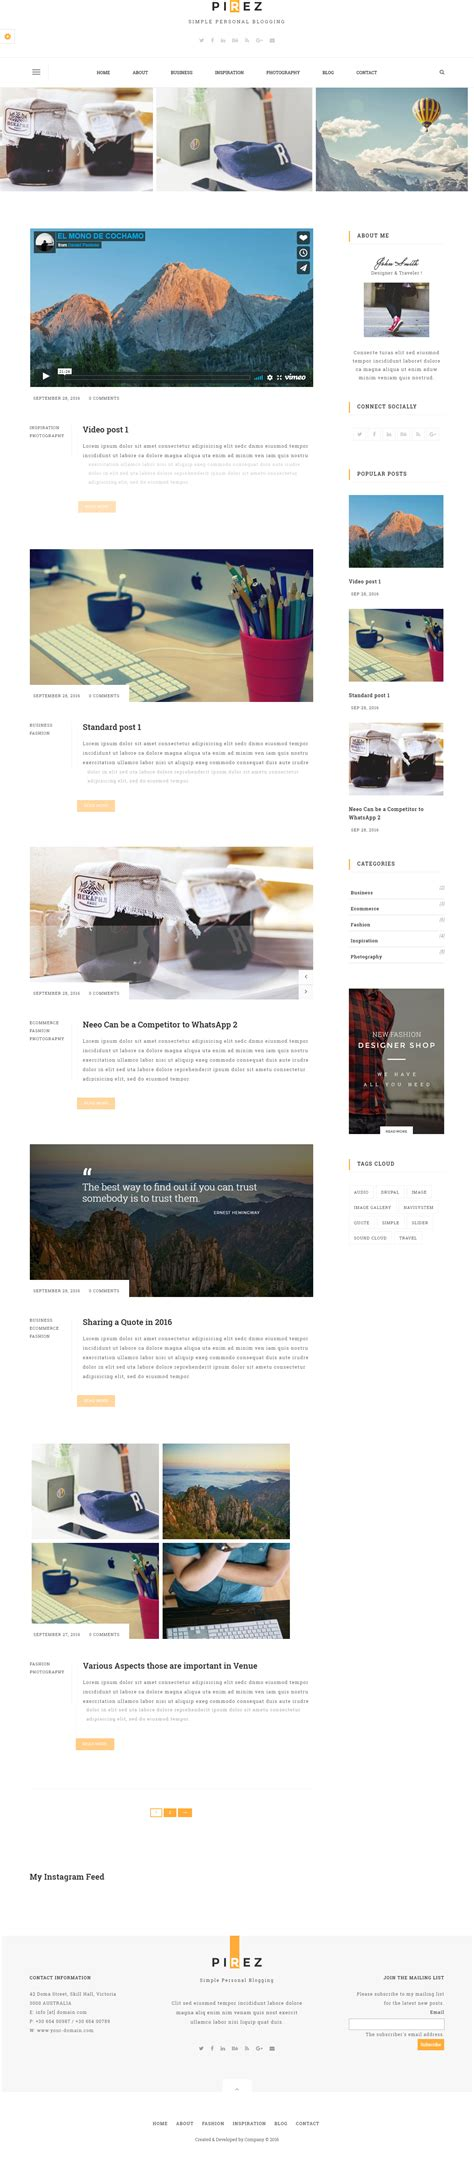 themeforest drupal 8 pirez blogging drupal 8 theme by drupalet themeforest